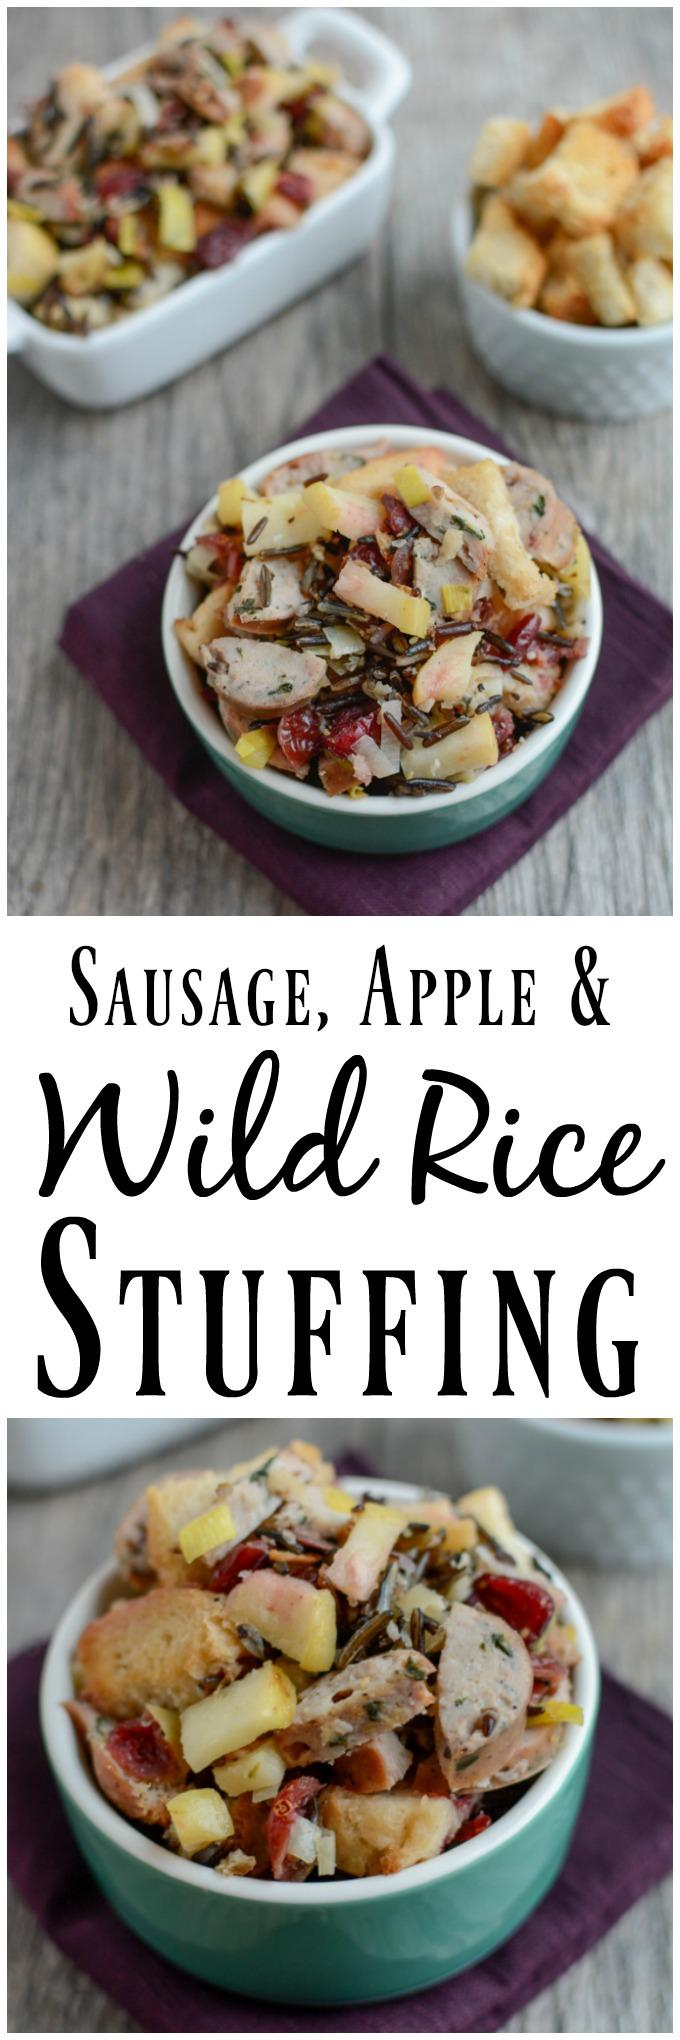 This Sausage and Wild Rice Stuffing is hearty enough for a meal but also makes a delicious side dish for Thanksgiving or Christmas.